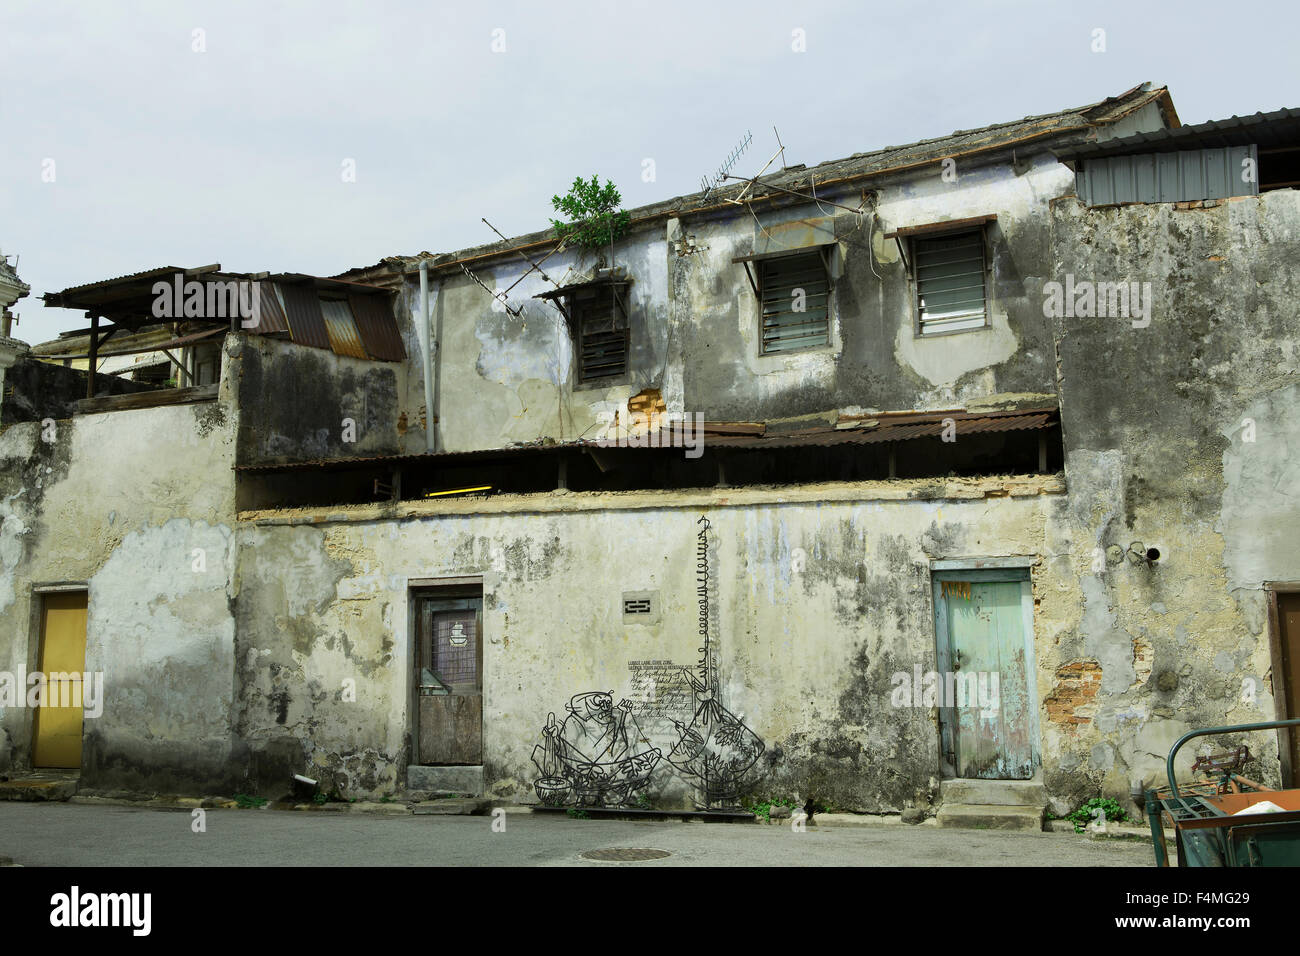 Fine example of a derelict heritage building in the UNESCO area of Georgetown Penang. - Stock Image